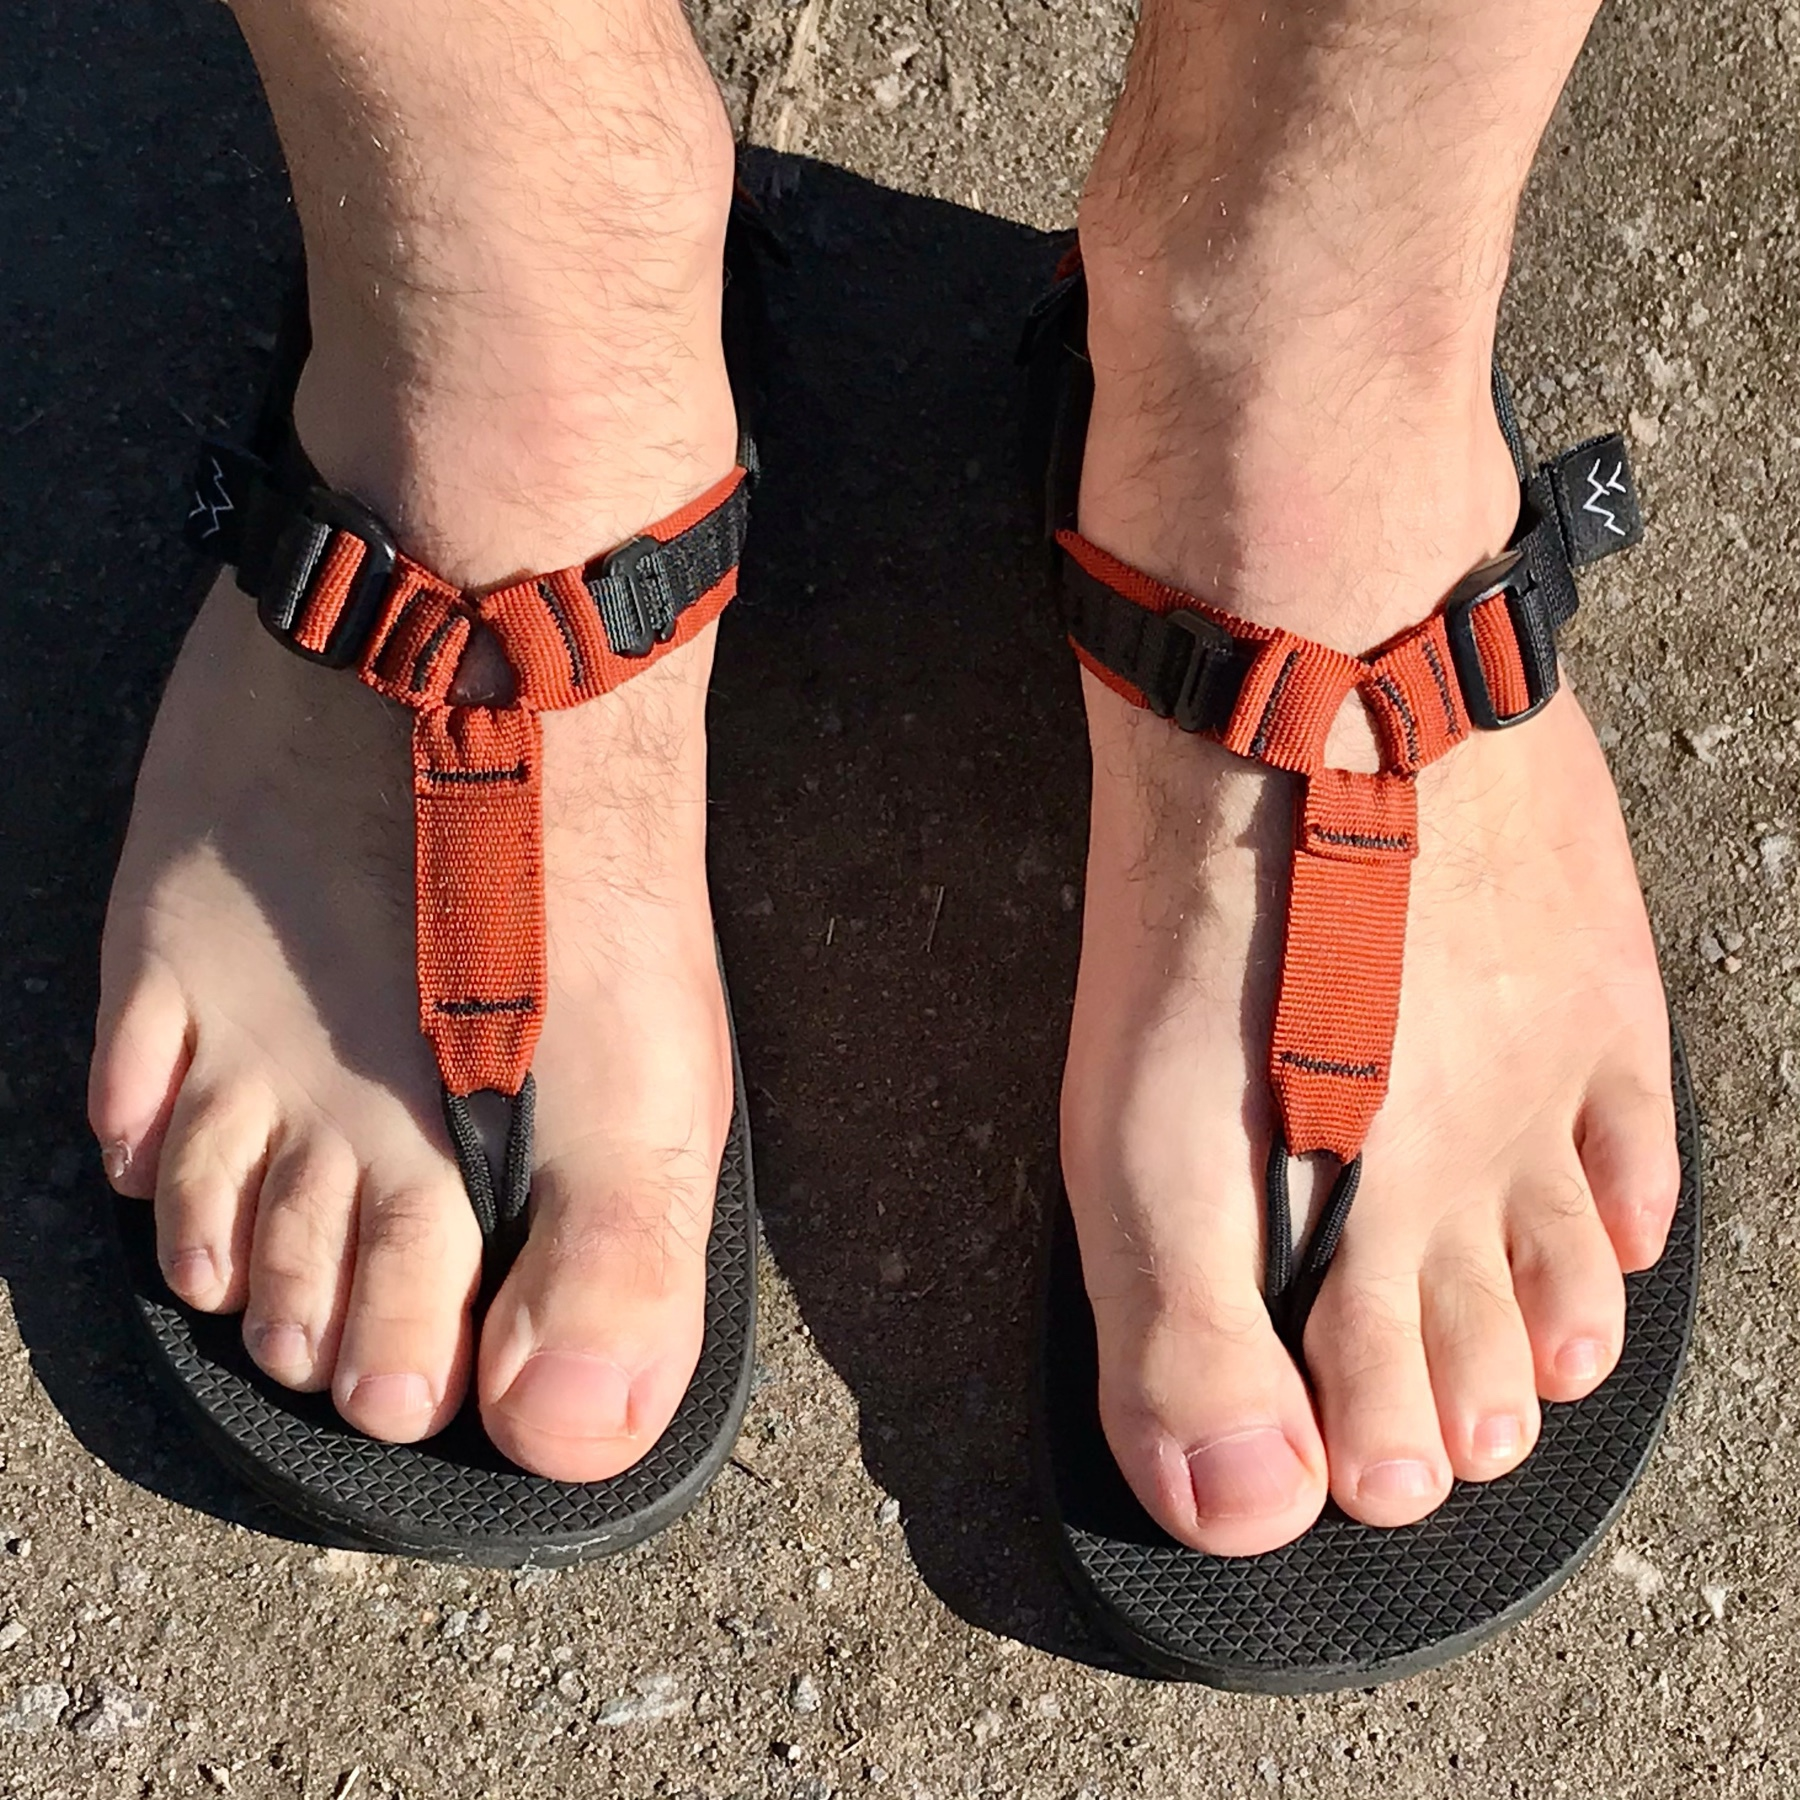 A pair of human, slightly hair feet, very pasty, in sandals with orange straps.